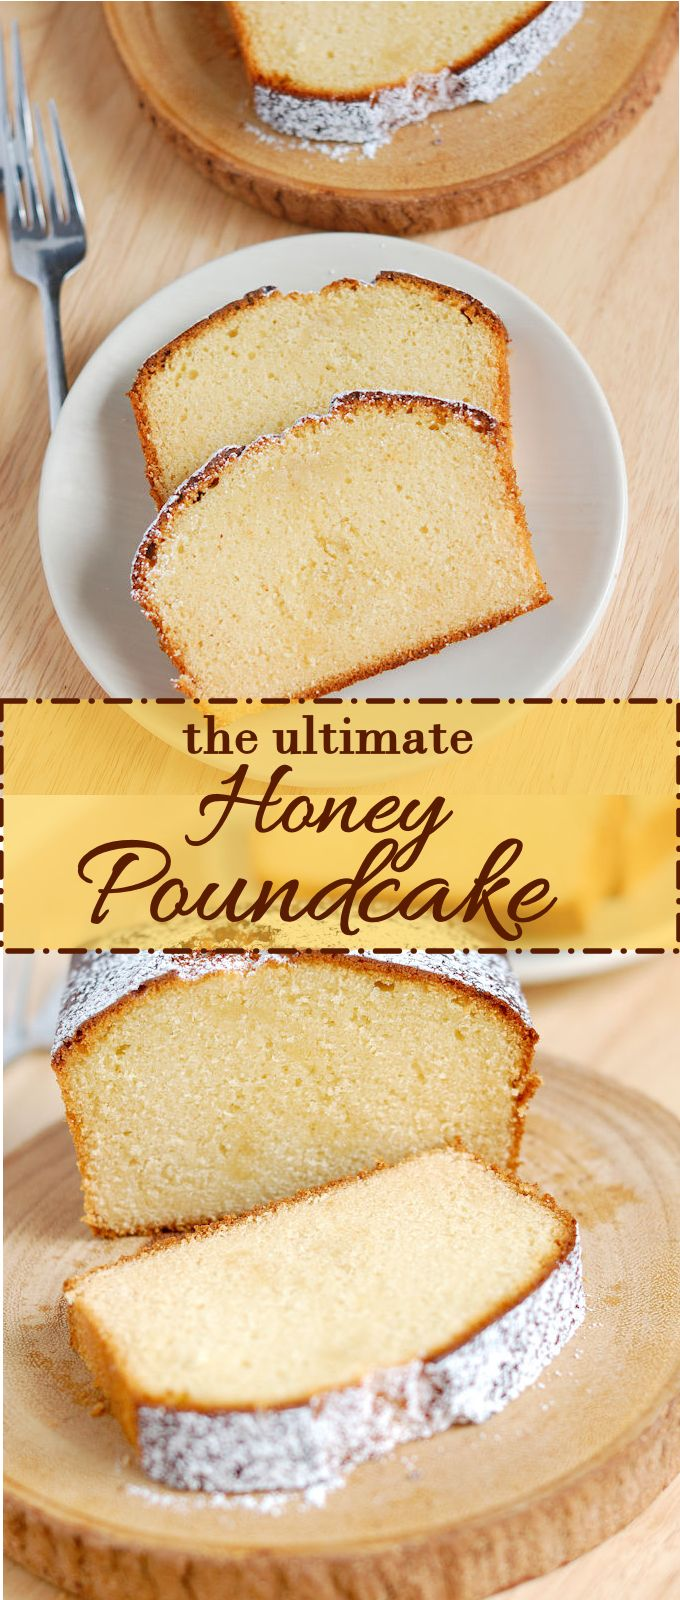 After months of research and testing I created Pound Cake Perfection. The ultimate honey pound cake has a lovely tawny color and luscious caramel flavor.